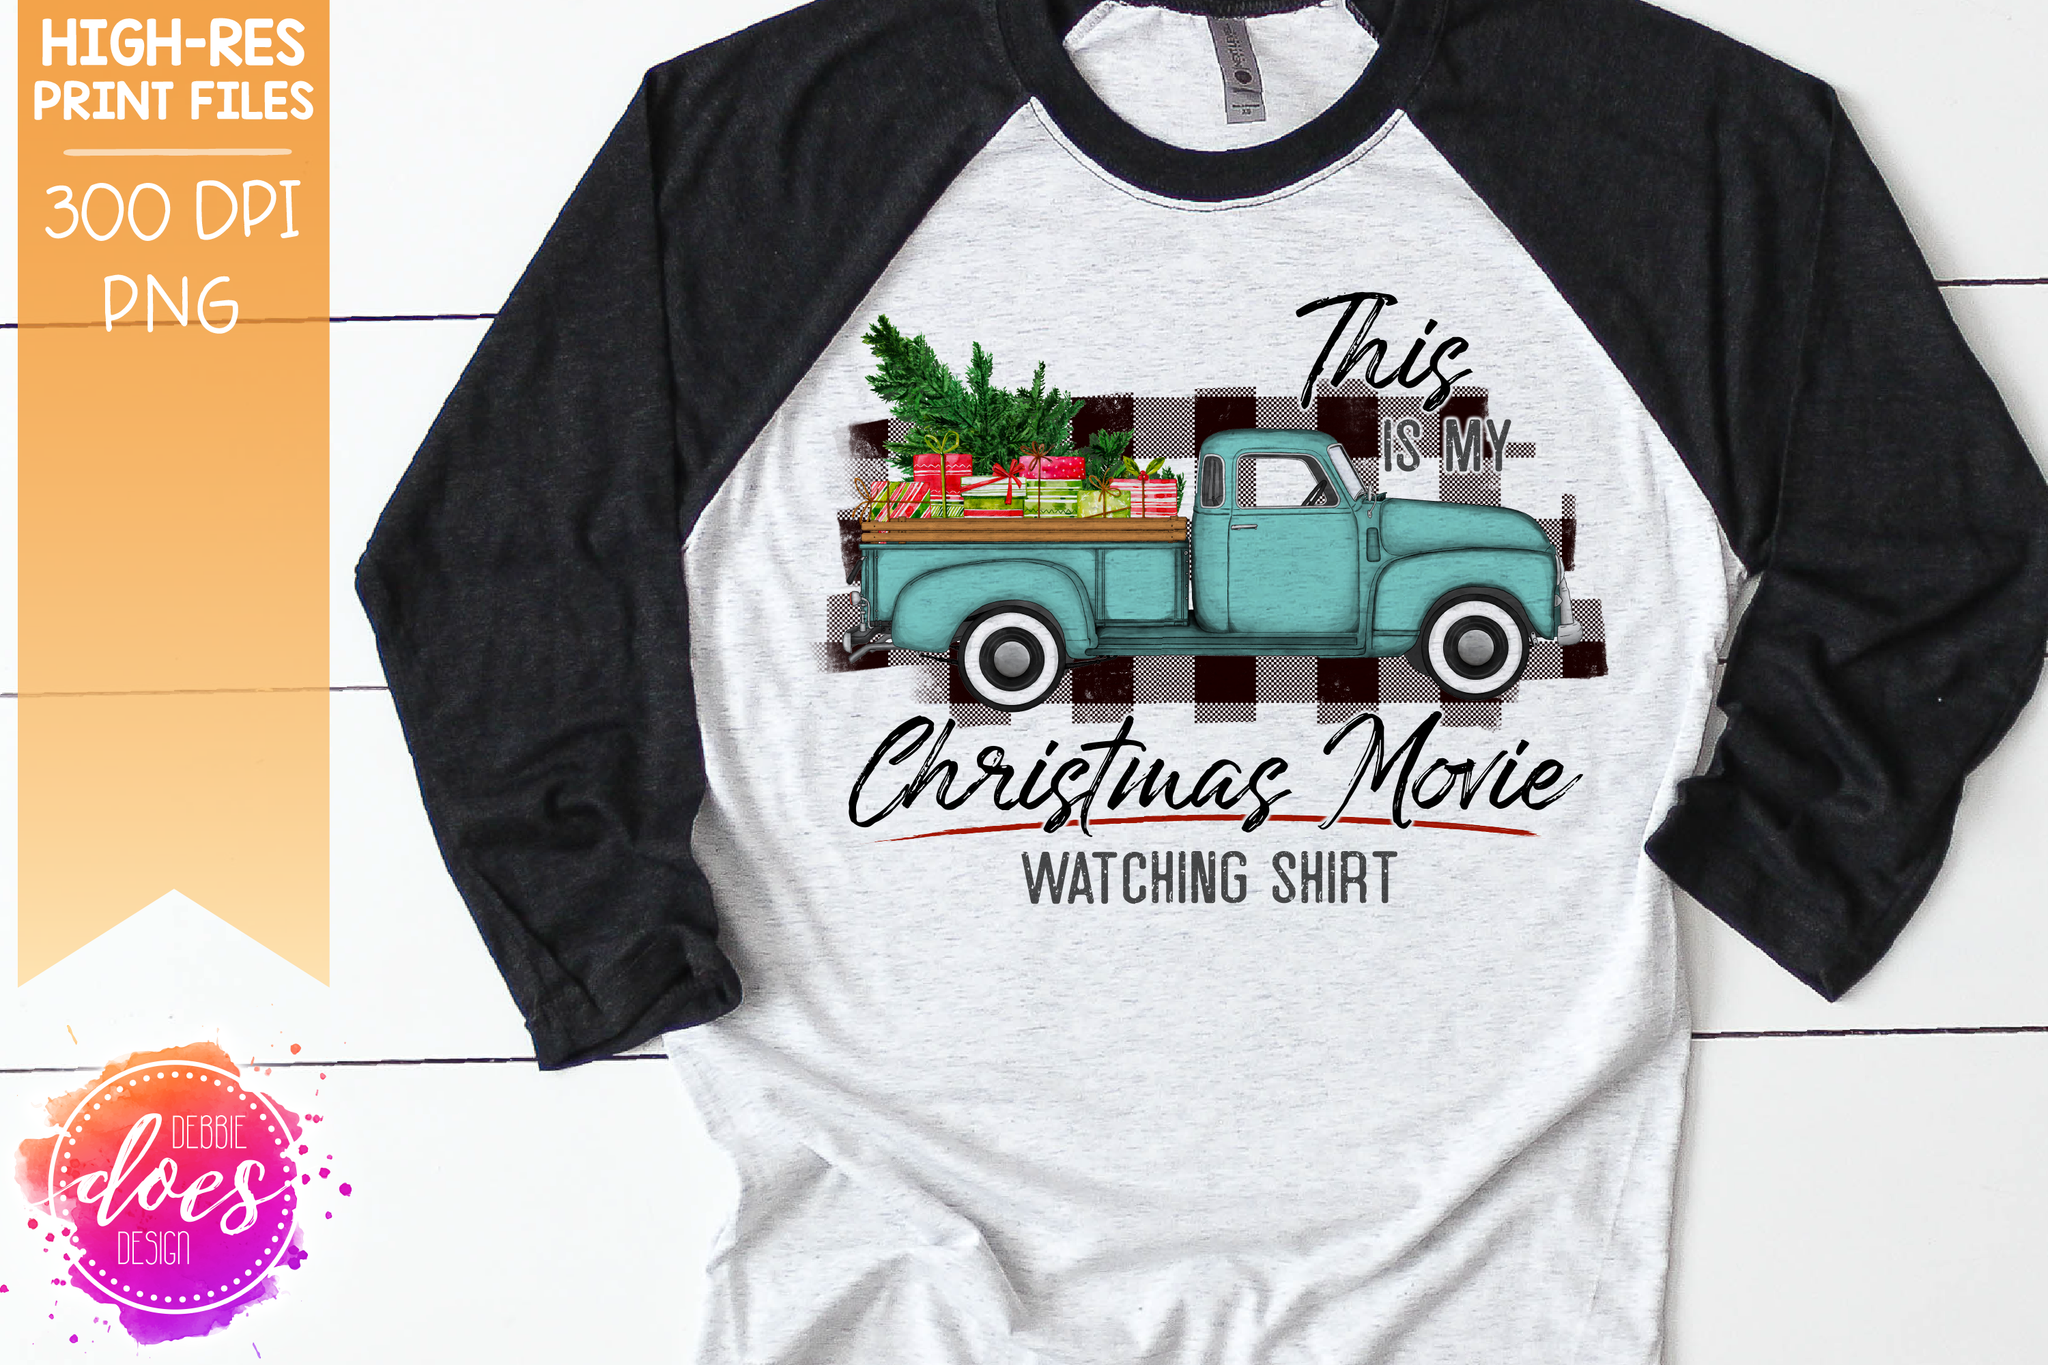 Christmas Movie Watching - Shirt - Mint with White Plaid Presents - Sublimation/Printable Design